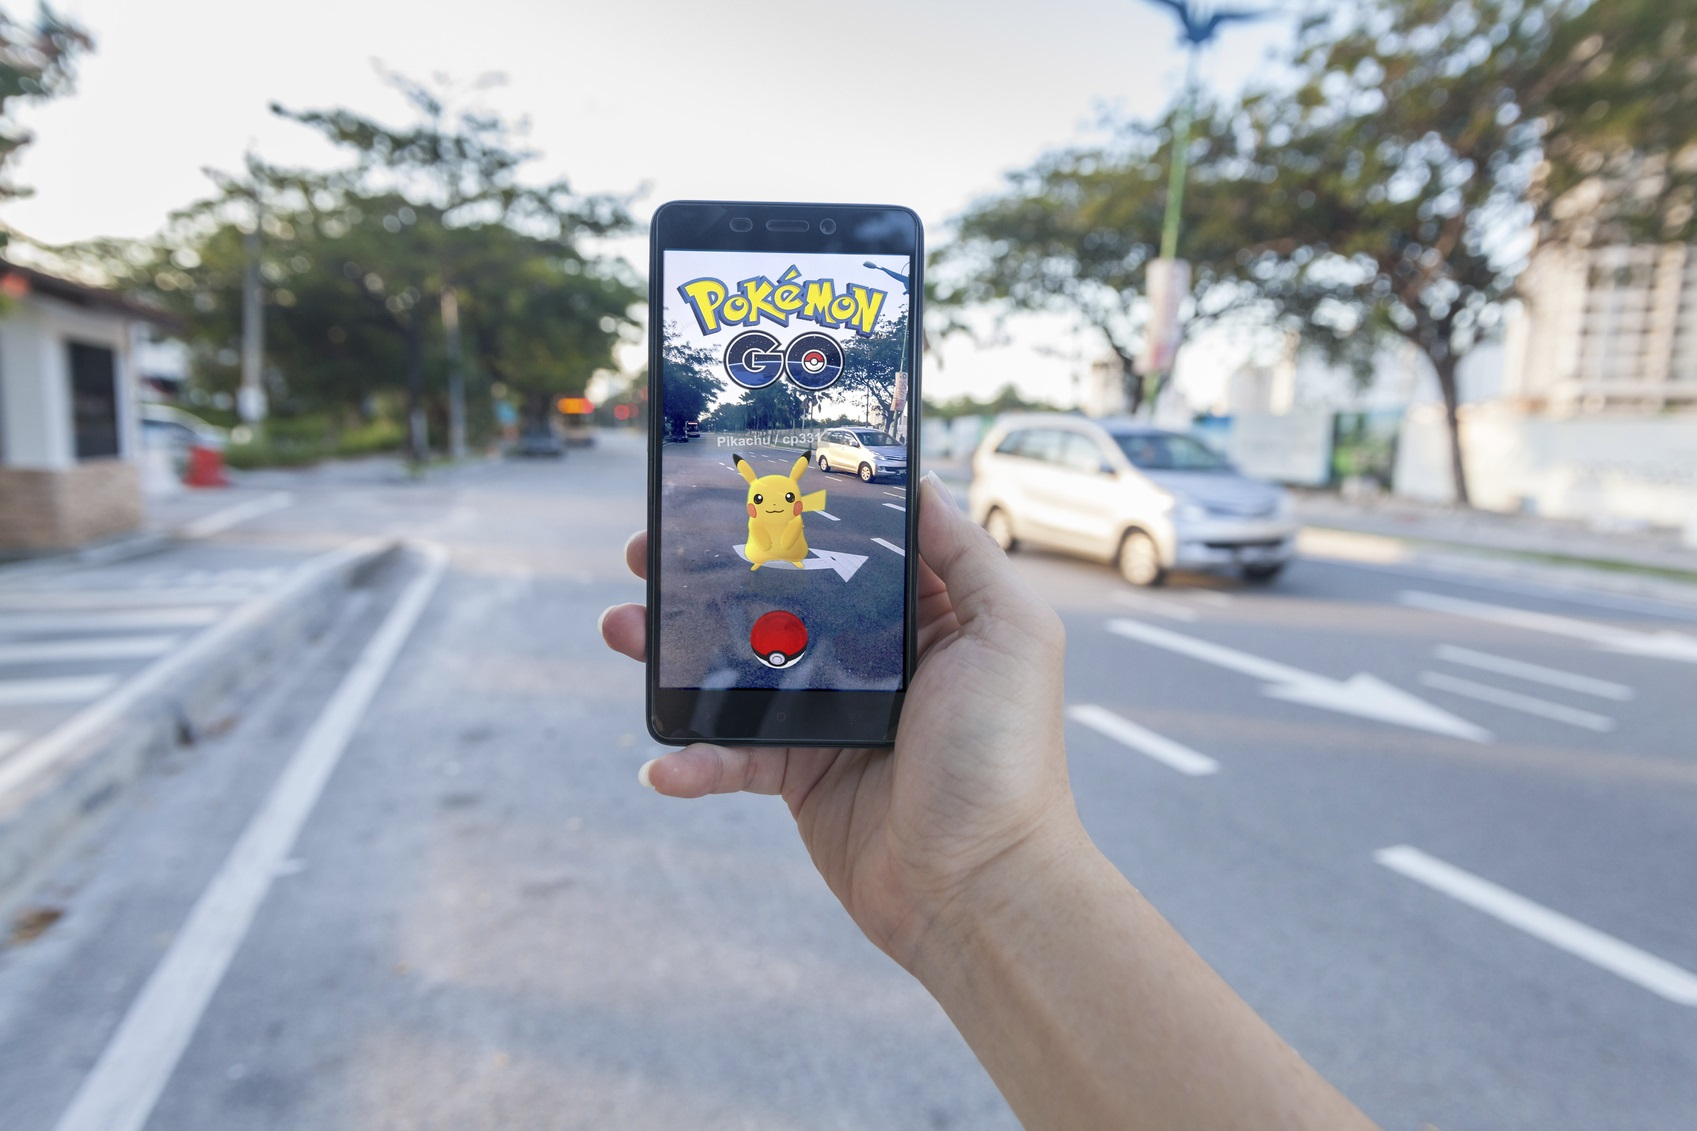 Pokemon Go gamification